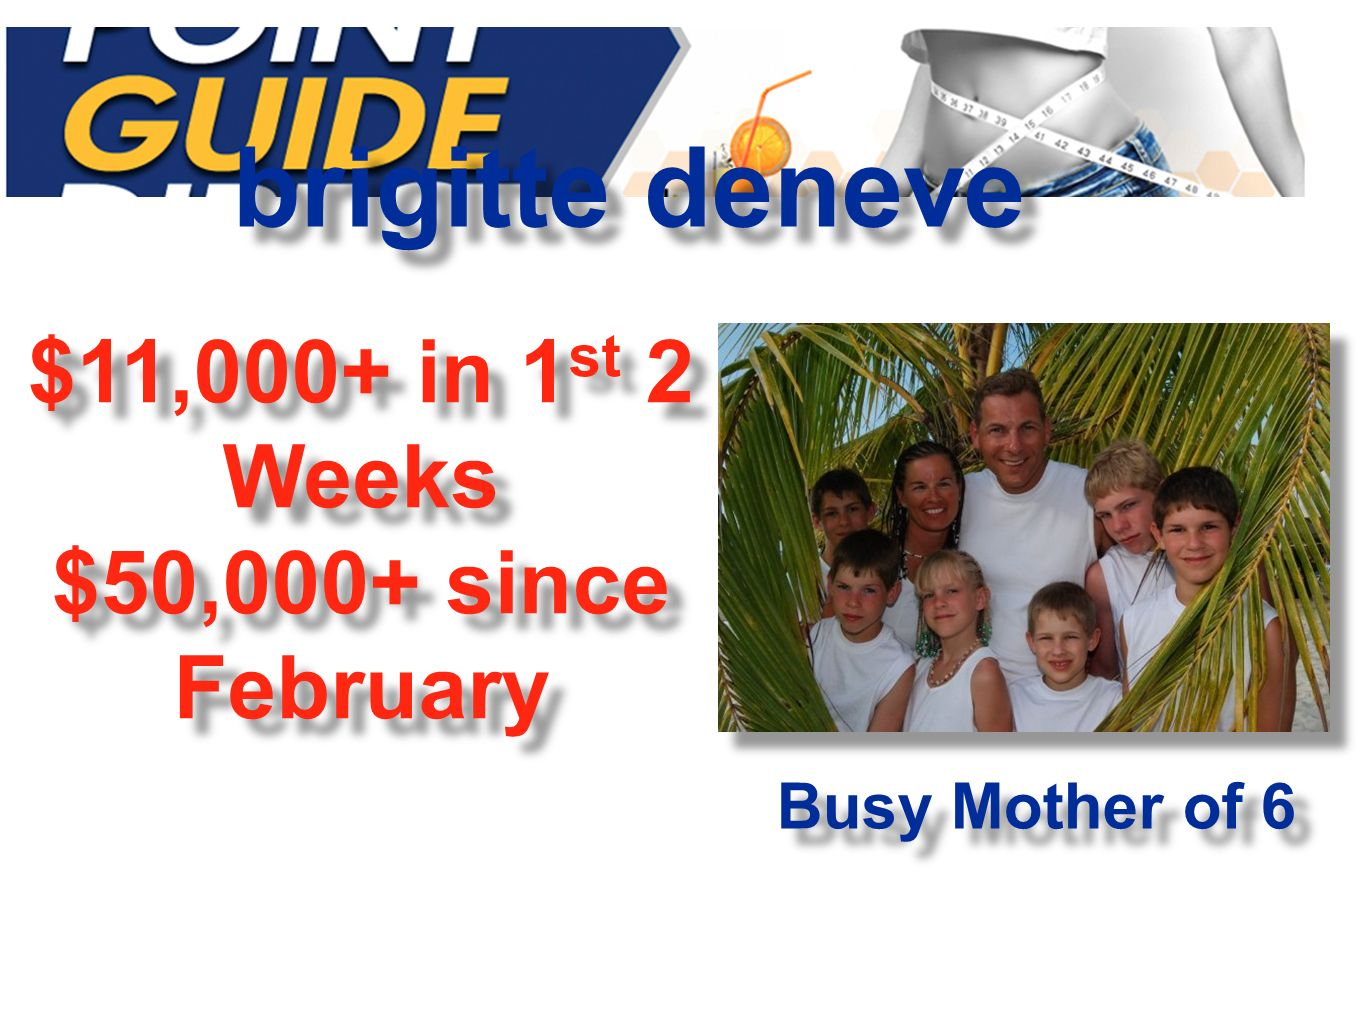 brigitte deneve $11,000+ in 1 st 2 Weeks $50,000+ since February $11,000+ in 1 st 2 Weeks $50,000+ since February Busy Mother of 6